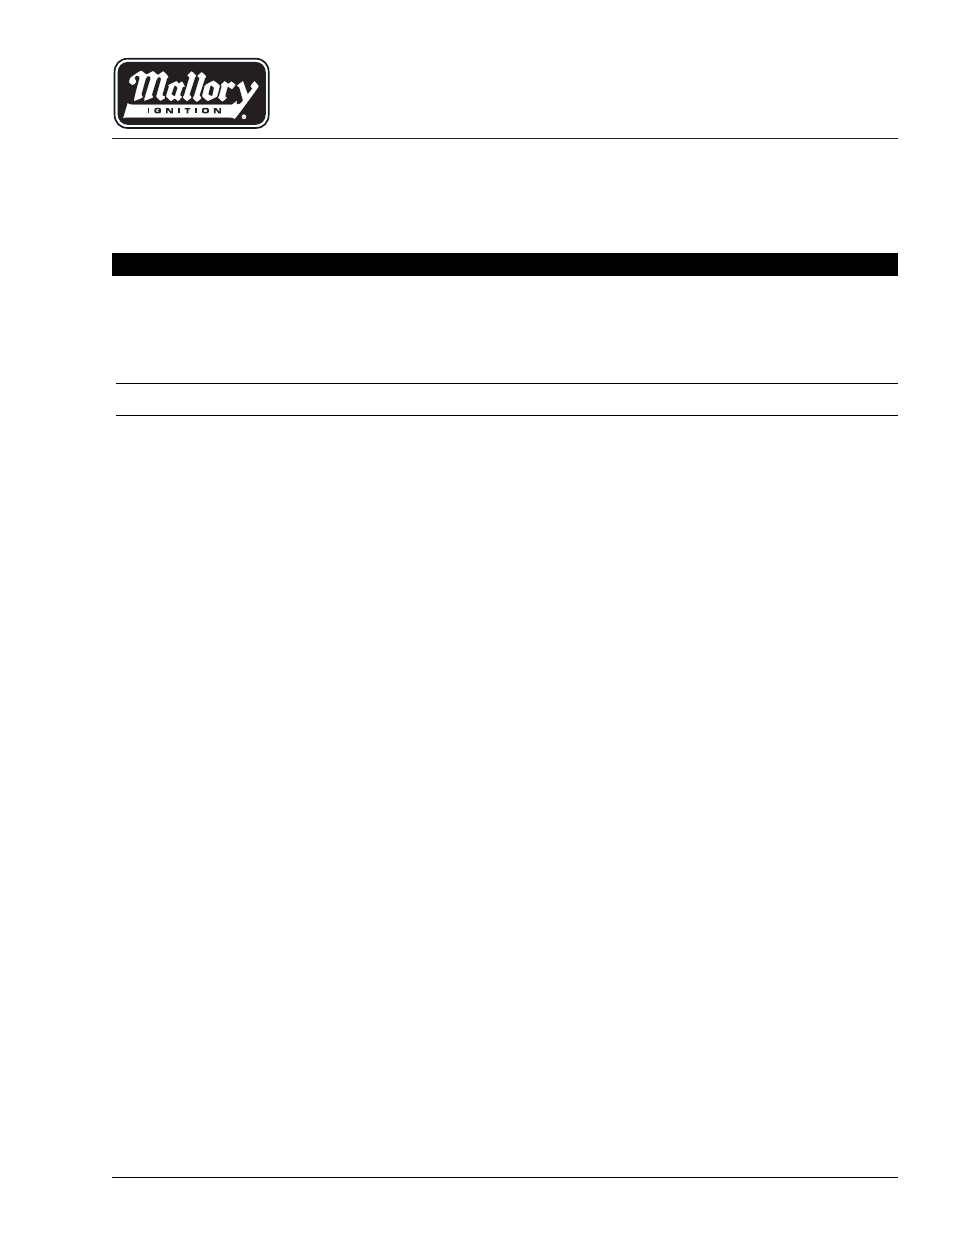 mallory ignition mallory unilite distributor page1 mallory ignition mallory unilite distributor user manual 13 mallory unilite distributor wiring diagram at bakdesigns.co